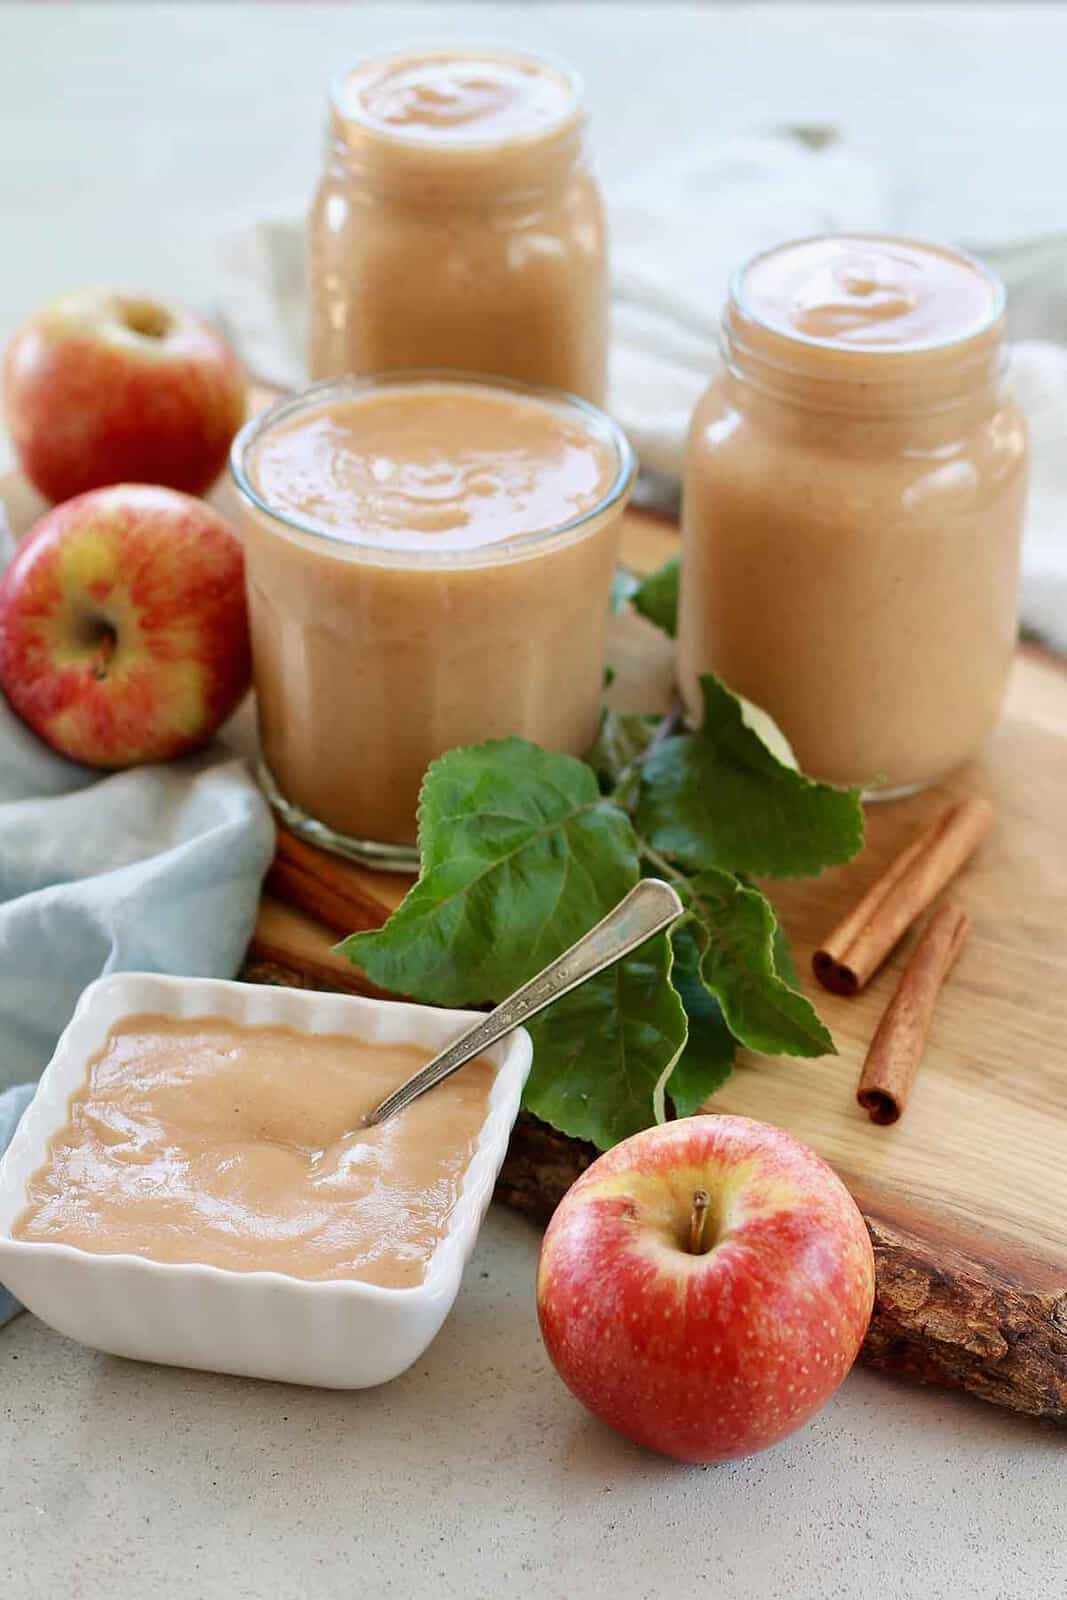 three jars of unsweetened applsauce on a wooden cutting board with apples and leaves